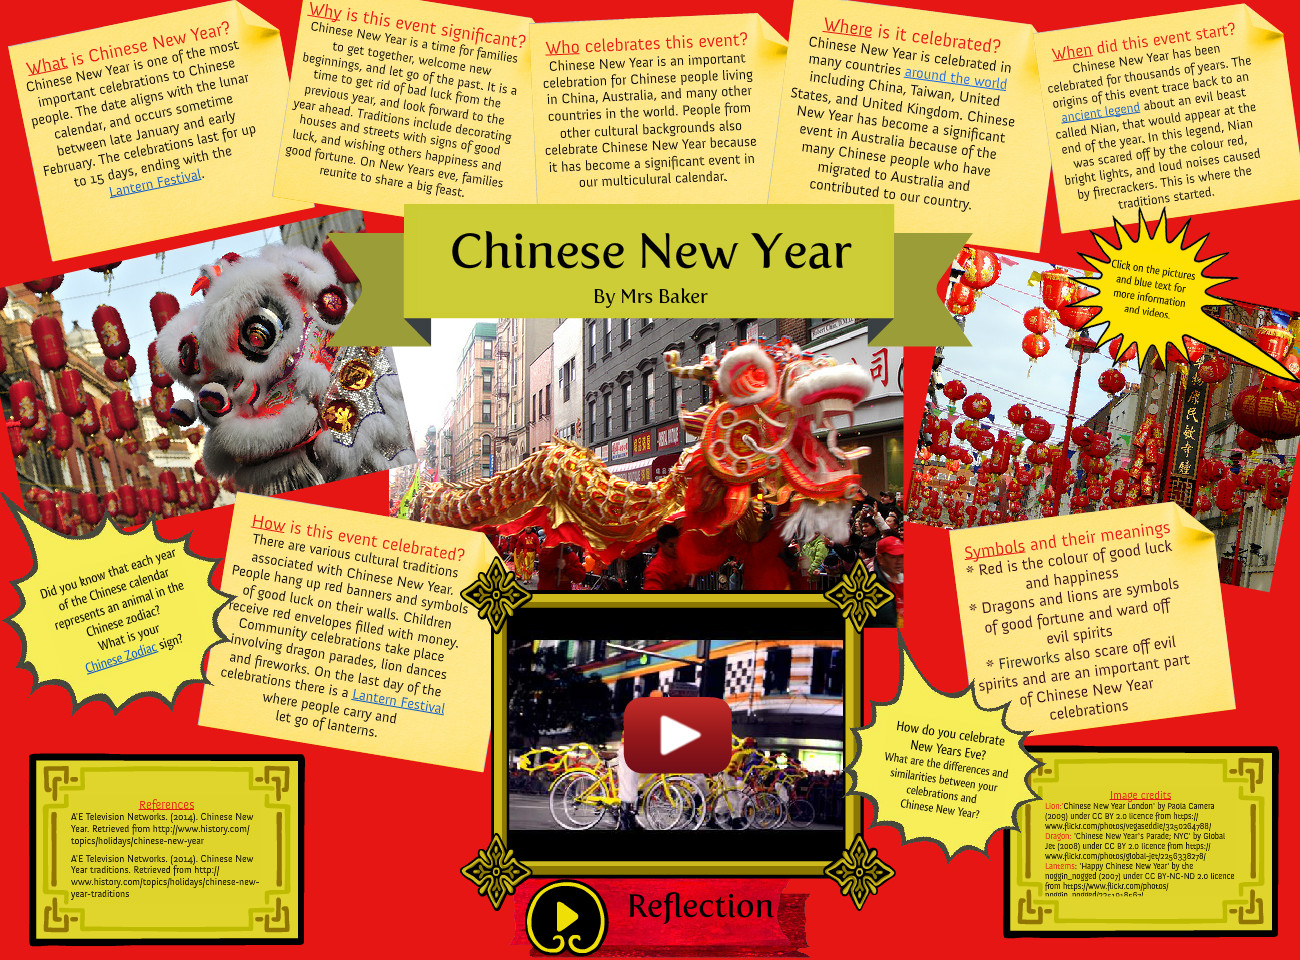 Chinese New Year History Channel